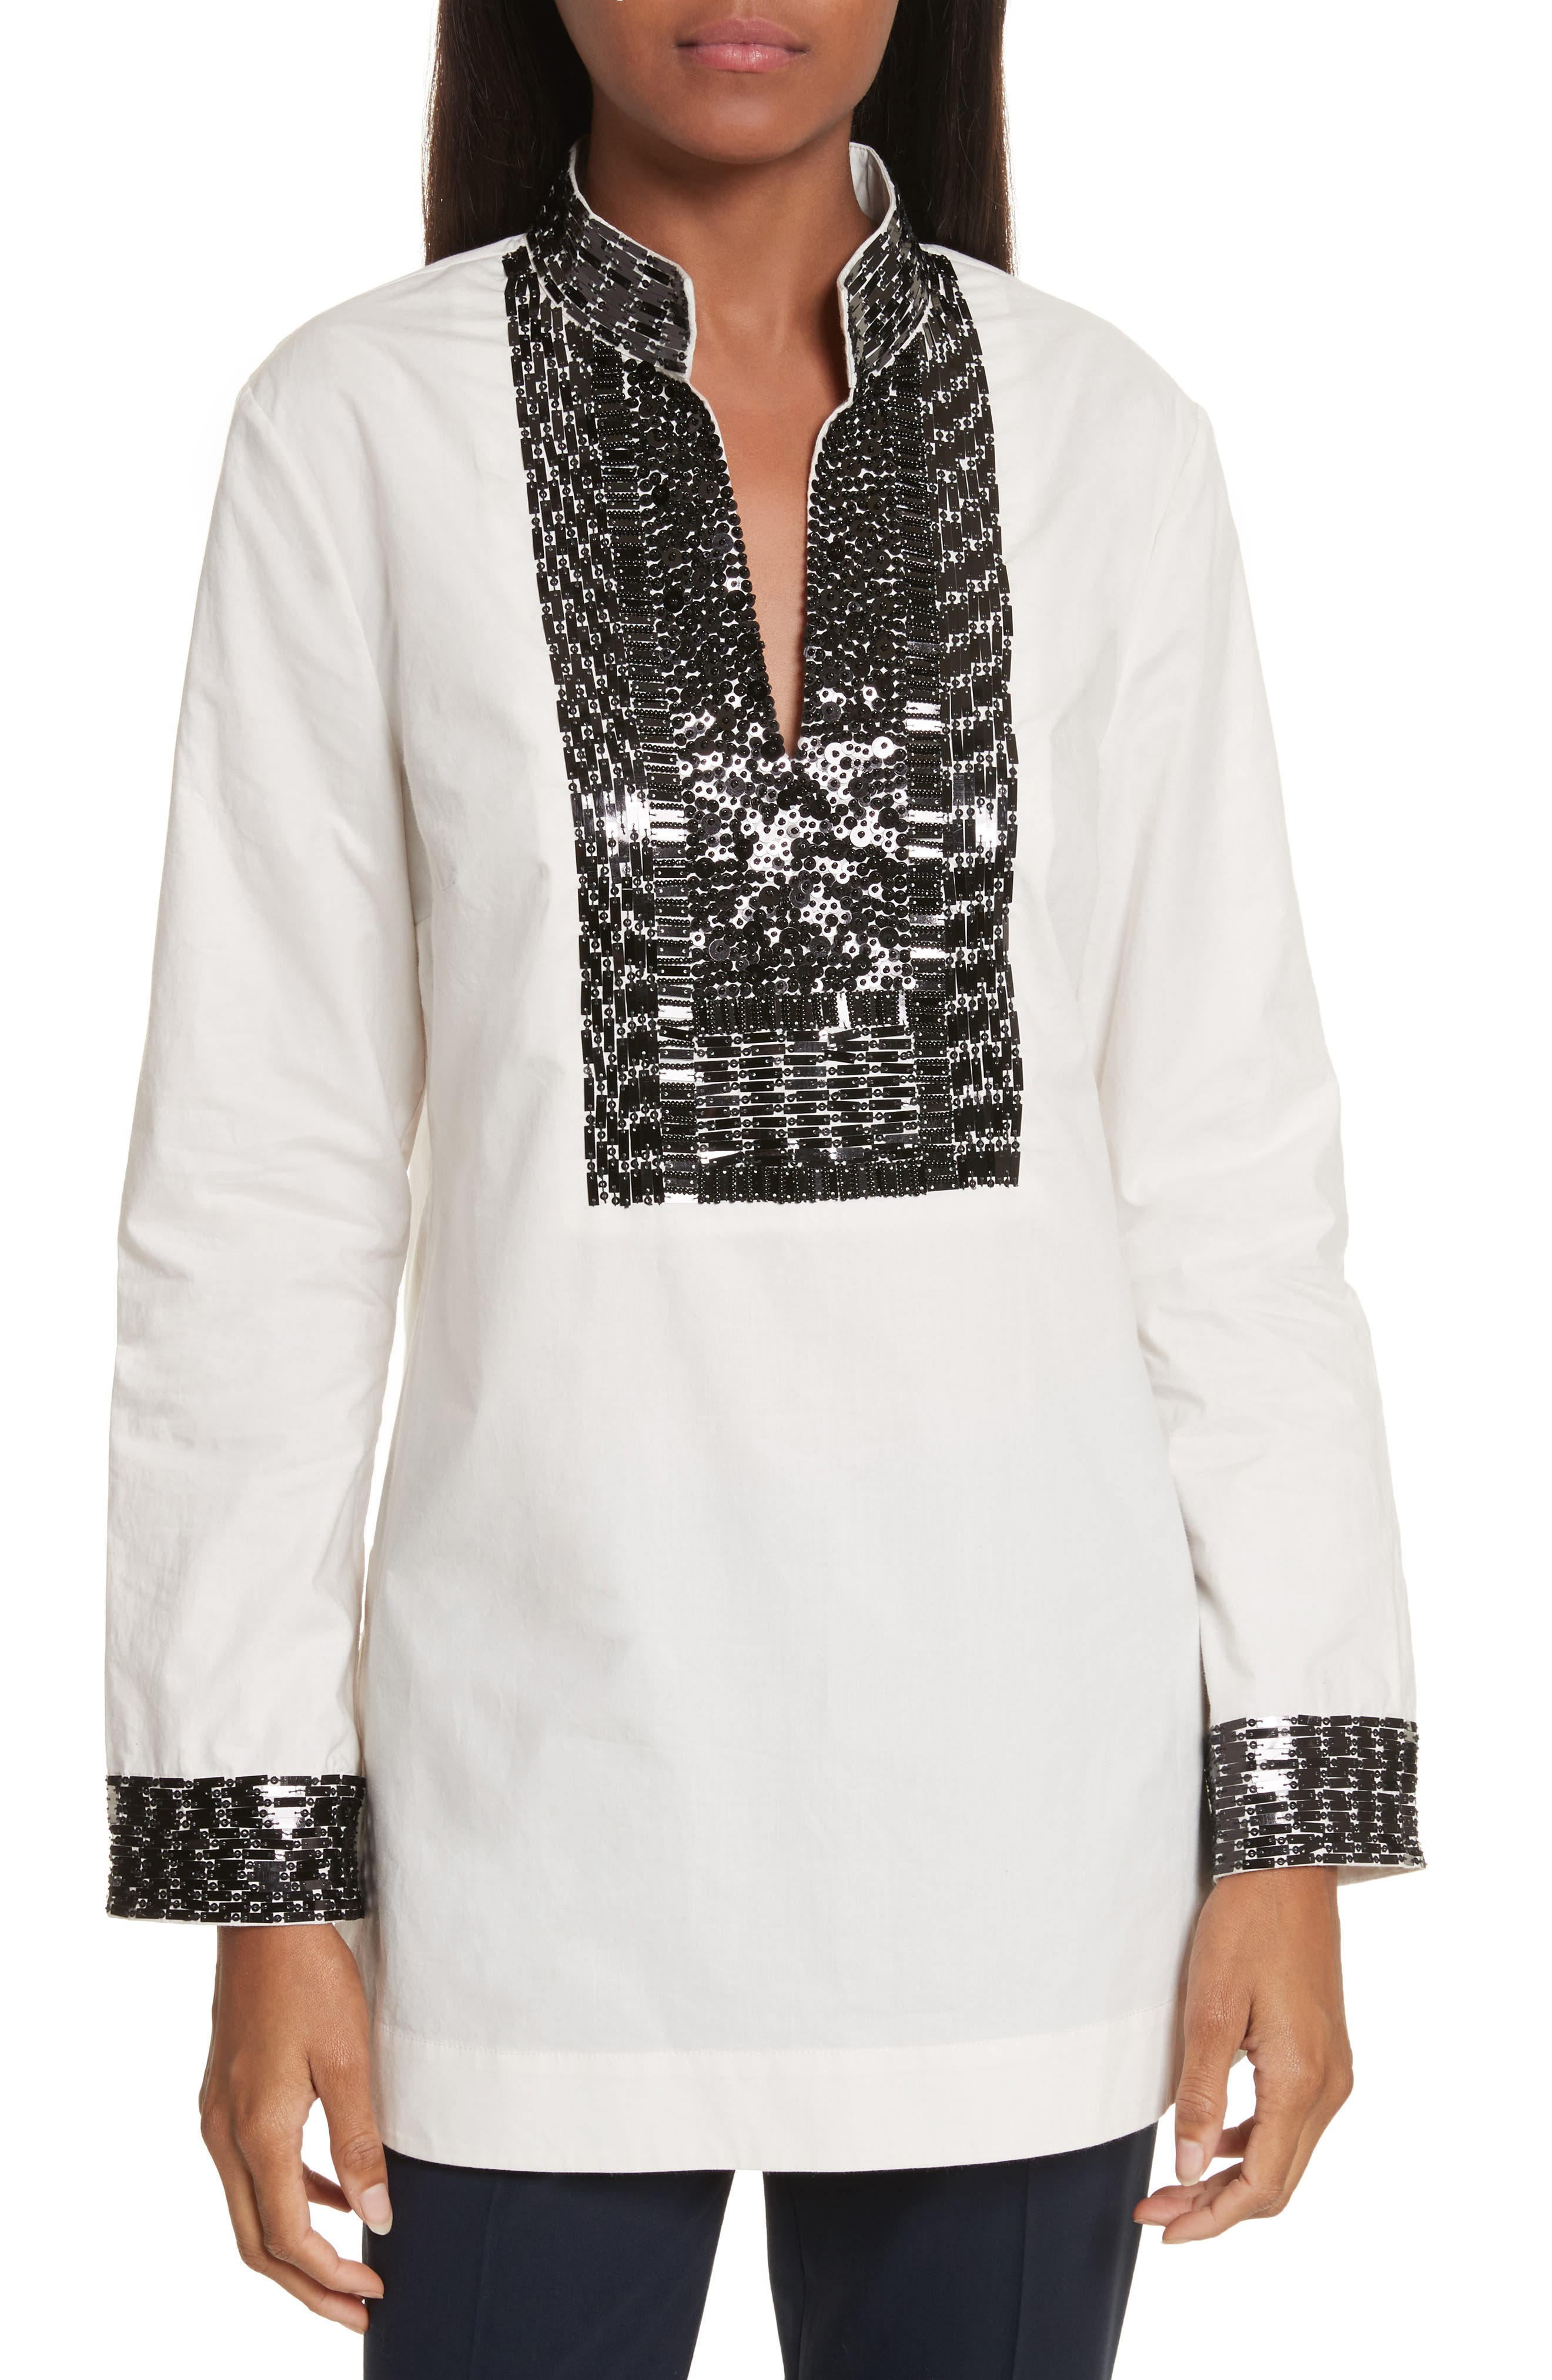 Tory Burch Tory Embellished Cotton Tunic